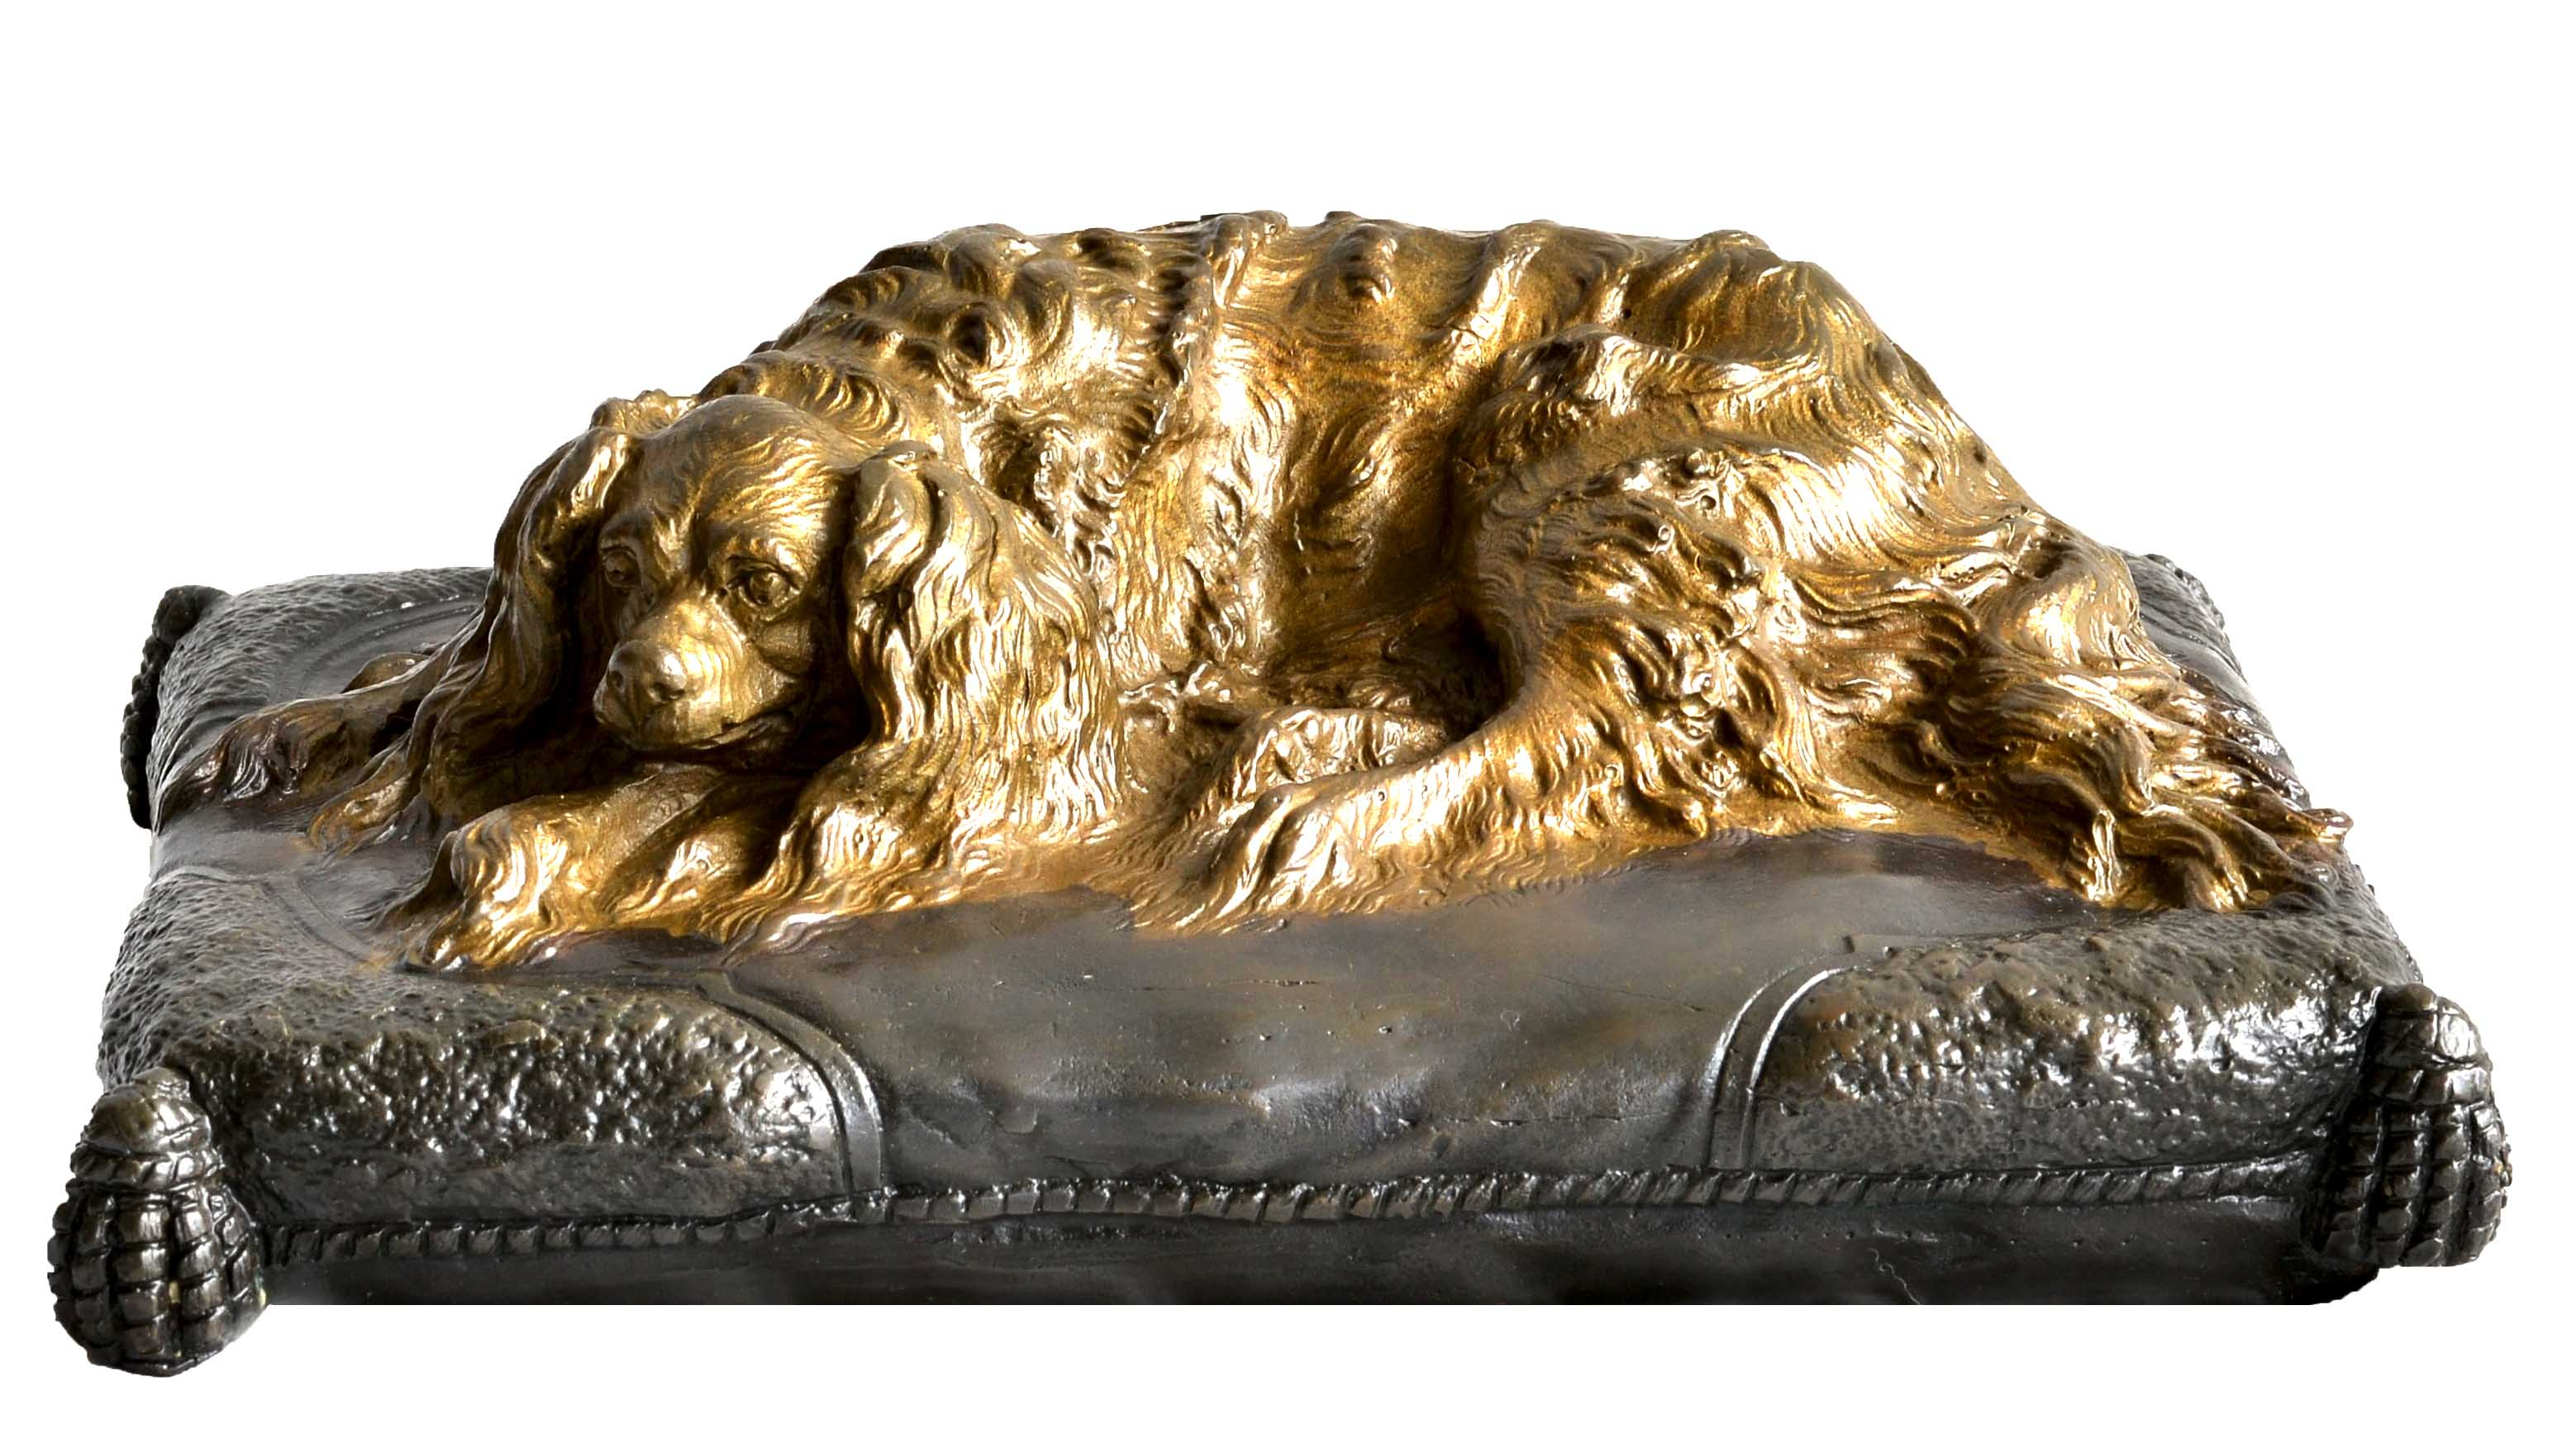 Click to see full size: Bronze King Charles Cavalier Spaniel recumbent upon a tasselled cushion by Emmanuel Fr?miet (1824 -1910)  An early small and very detailed bronze which Fr?miet cast himself from his workshop and foundry at 42 Boulevard du Temple. This Spaniel bronze is es- Bronze King Charles Cavalier Spaniel recumbent upon a tasselled cushion by Emmanuel Fr?miet (1824 -1910)<br /> <br /> An early small and very detailed bronze which Fr?miet cast himself from his workshop and foundry at 42 Boulevard du Temple. This Spaniel bronze is especially interesting and rare displaying two patinations.<br /> <br /> French circa 1850<br />